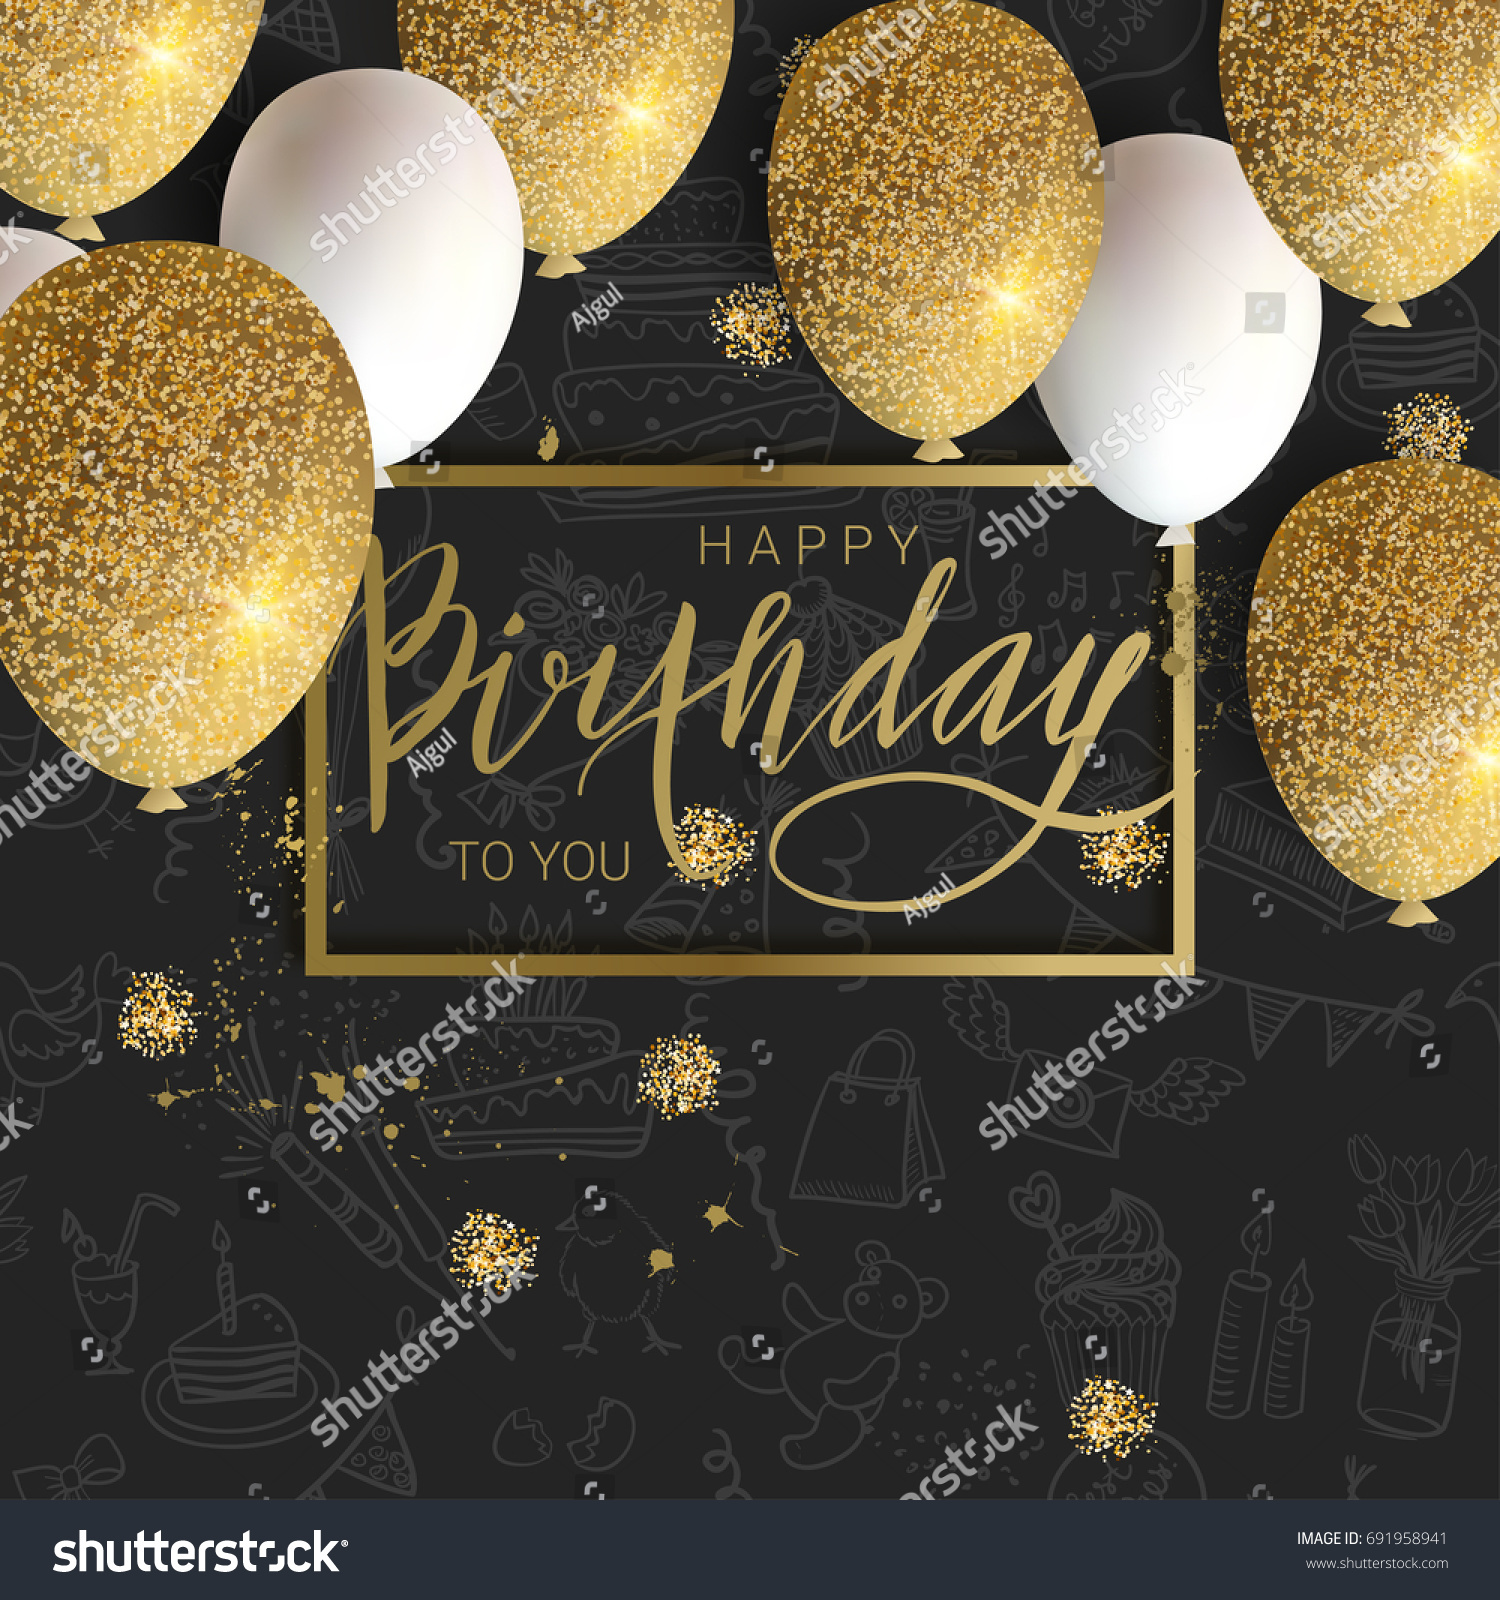 Happy Birthday DesignWhite And Golden Glitter Balloons Calligraphi On The Doodle Background